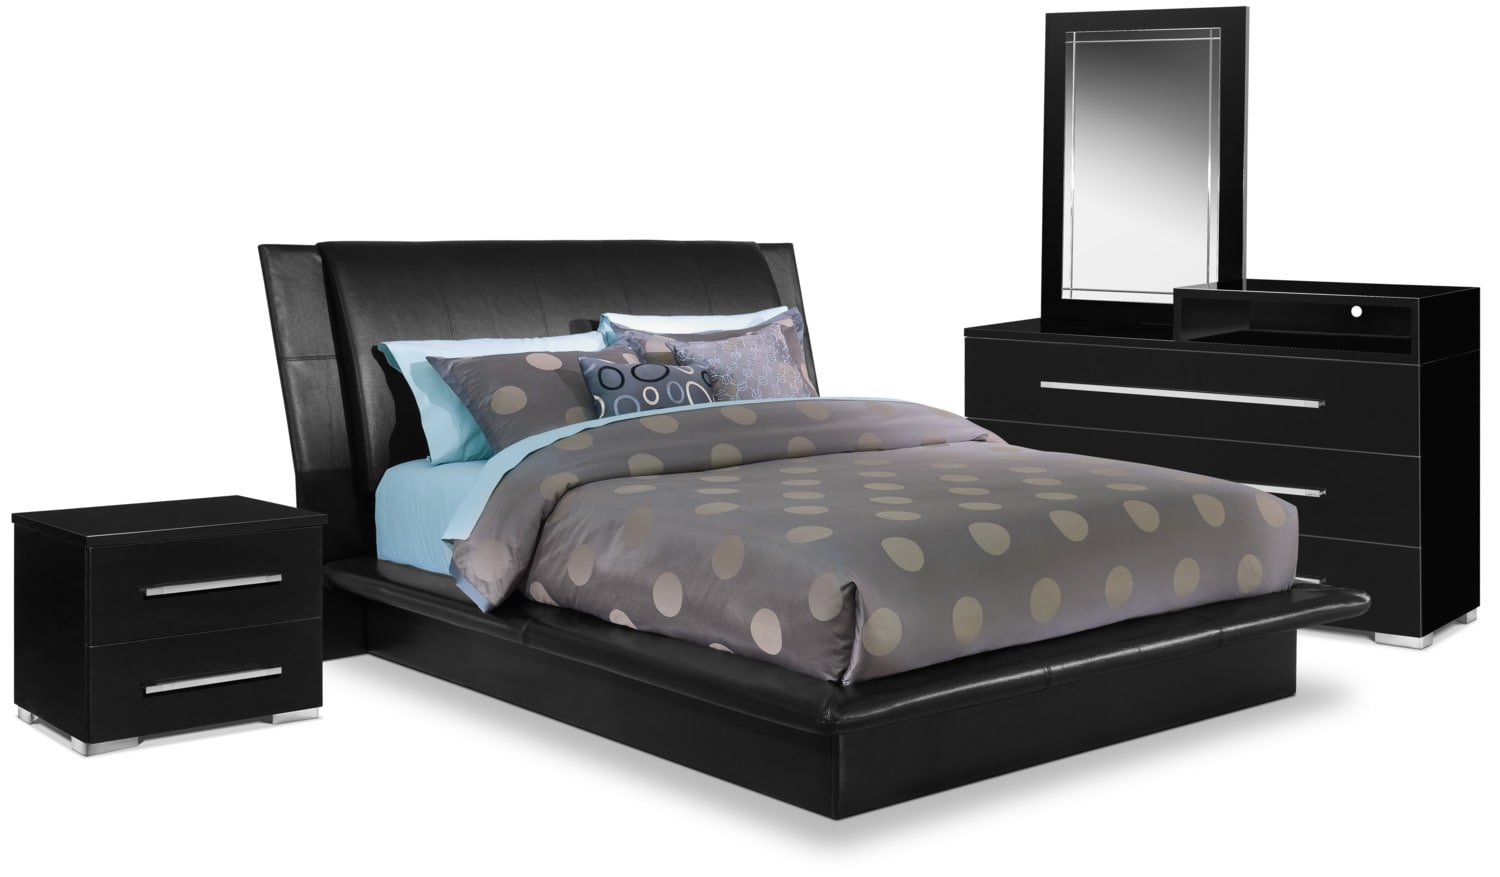 Dimora 6-Piece Queen Upholstered Bedroom Set with Media Dresser ...